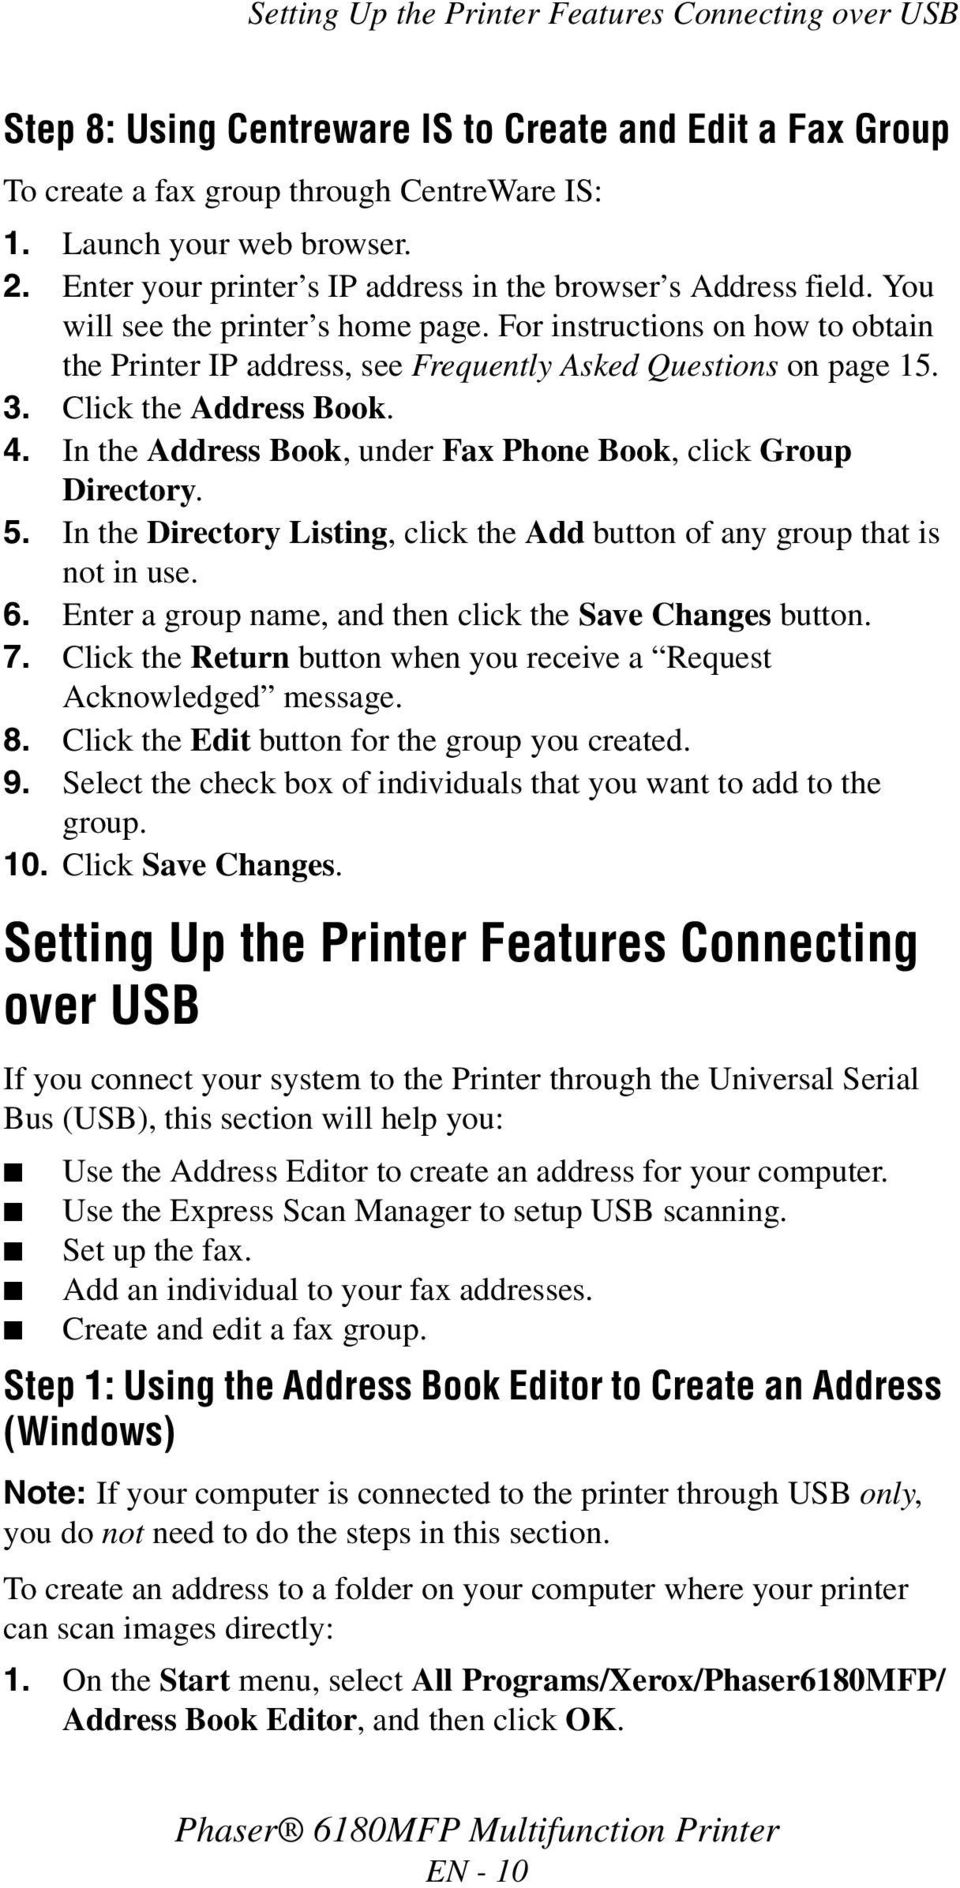 For instructions on how to obtain the Printer IP address, see Frequently Asked Questions on page 15. 3. Click the Address Book. 4. In the Address Book, under Fax Phone Book, click Group Directory. 5.